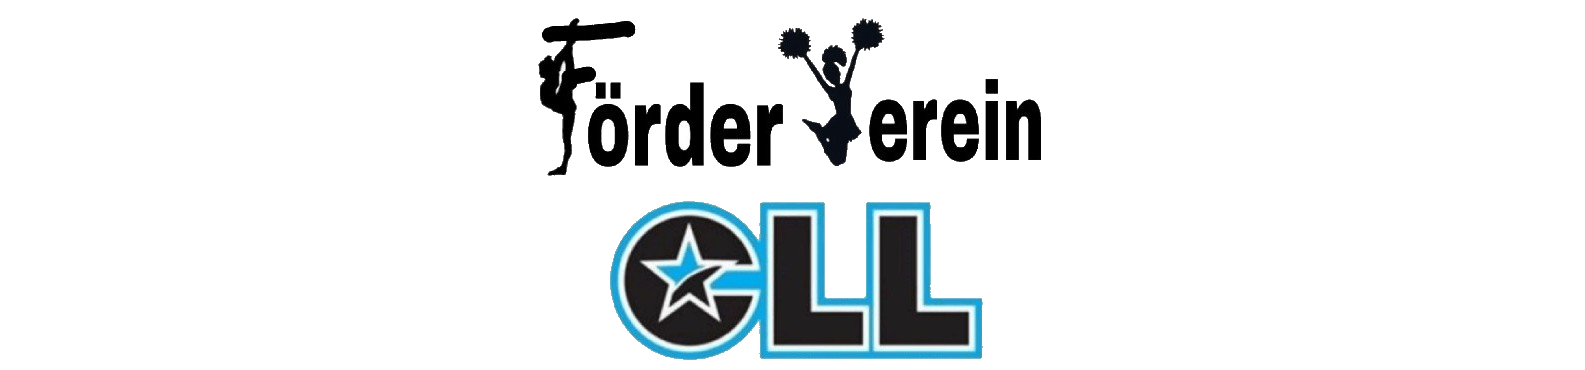 Förderverein Cheer Label Langenfeld e.V.